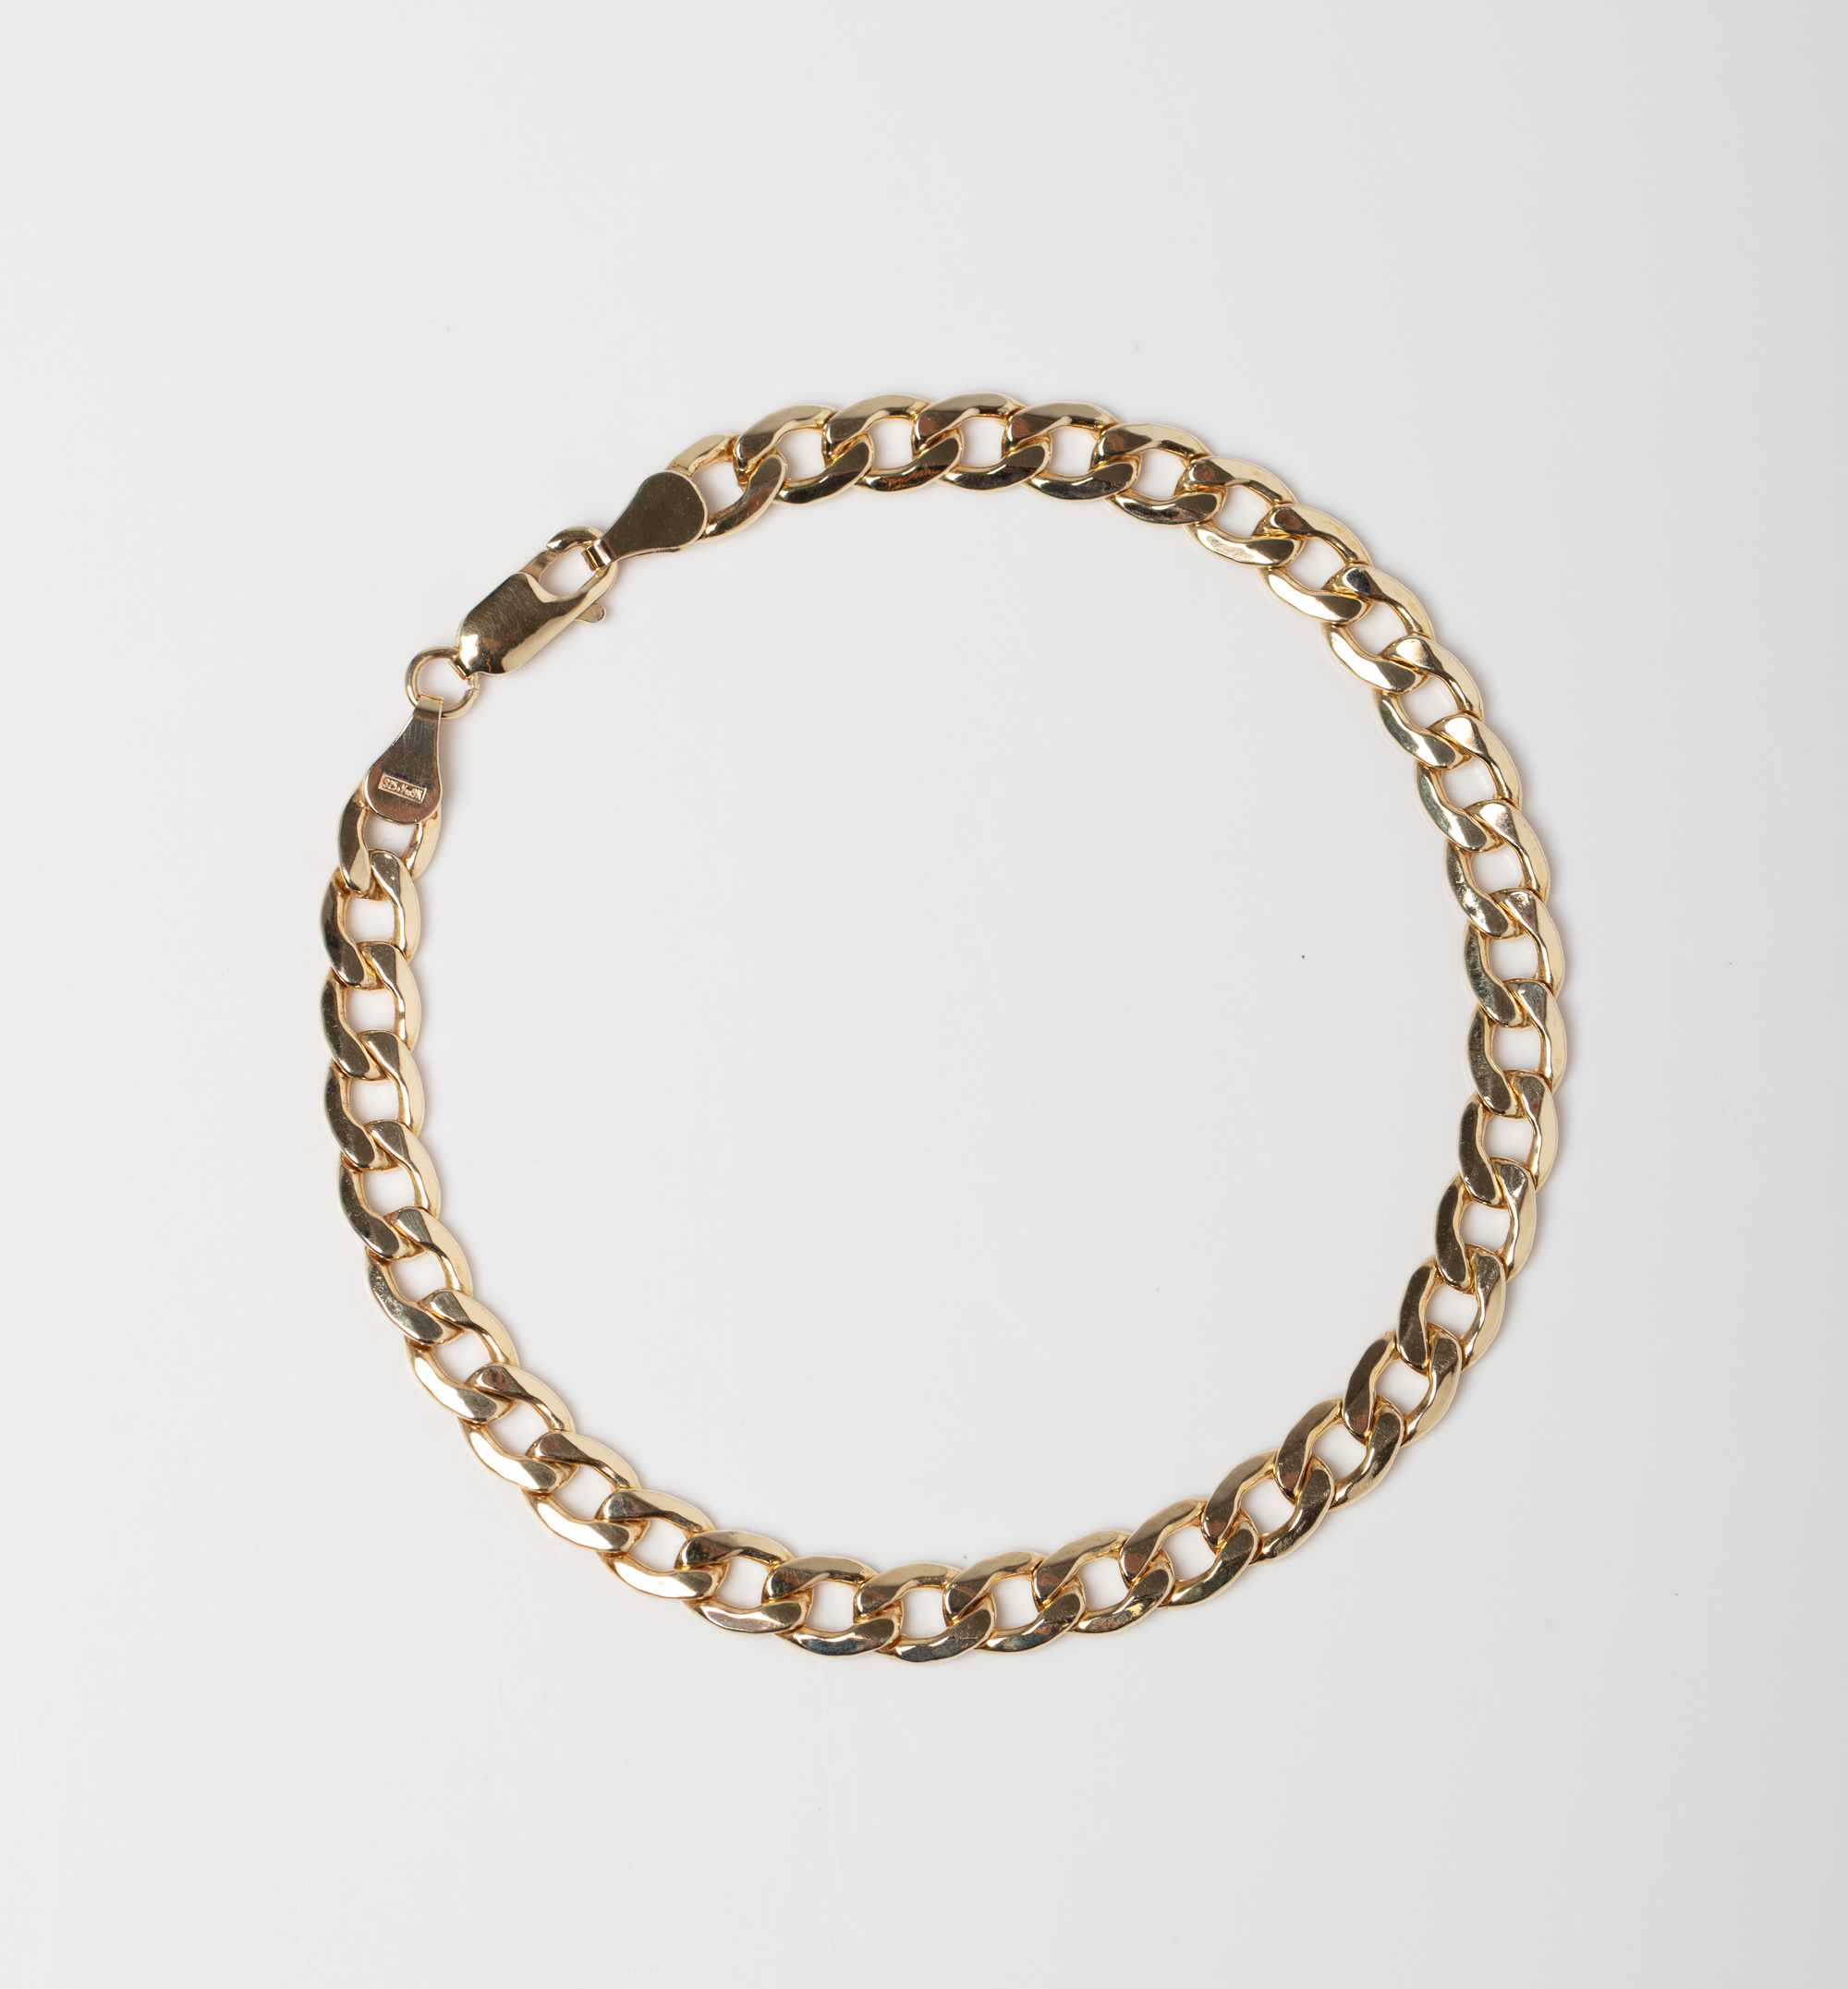 A 9CT GOLD & SILVER BONDED CURB BRACELET